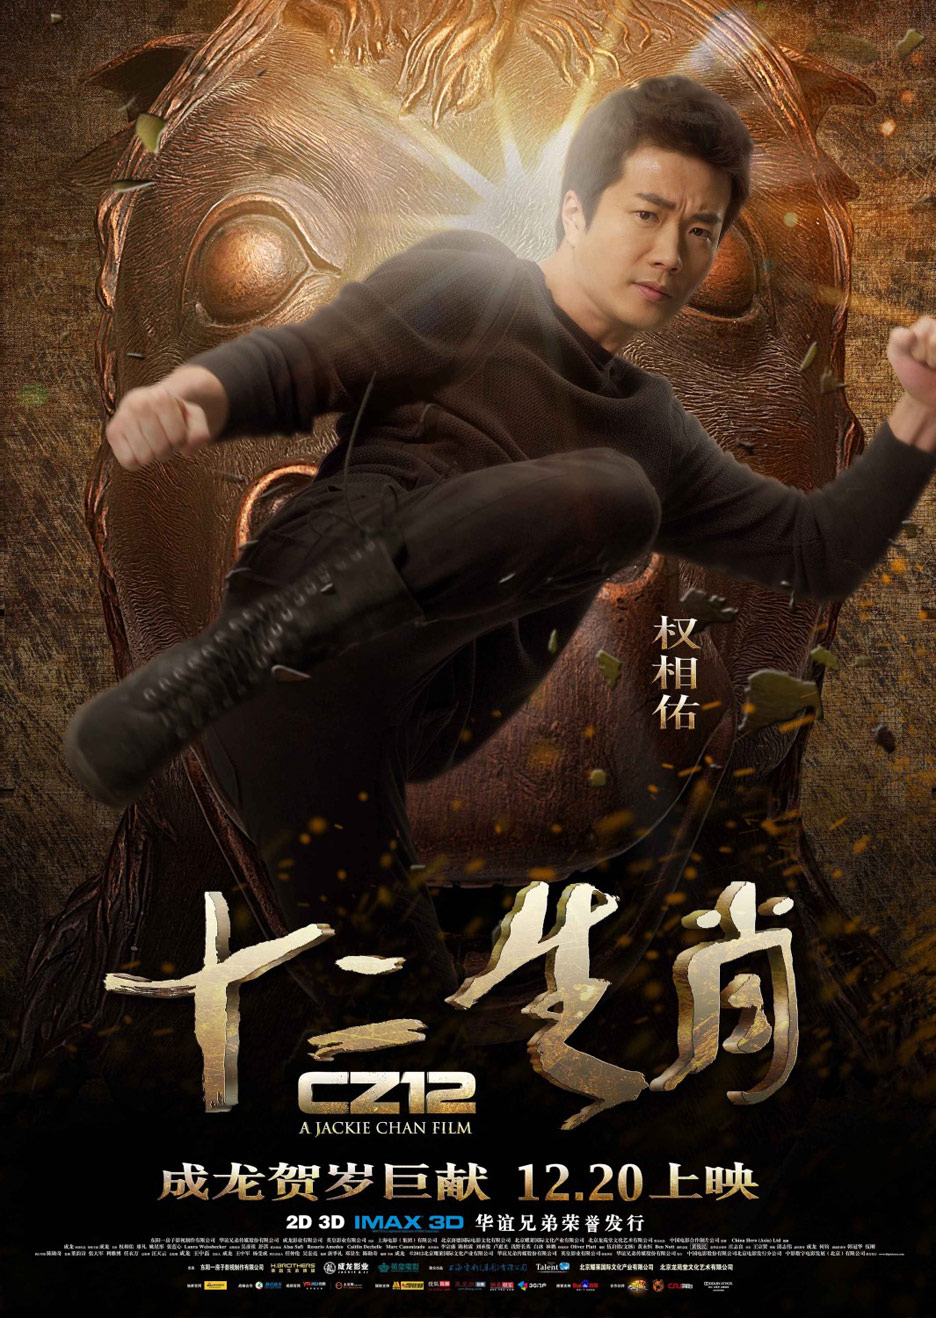 CZ12 Poster #27